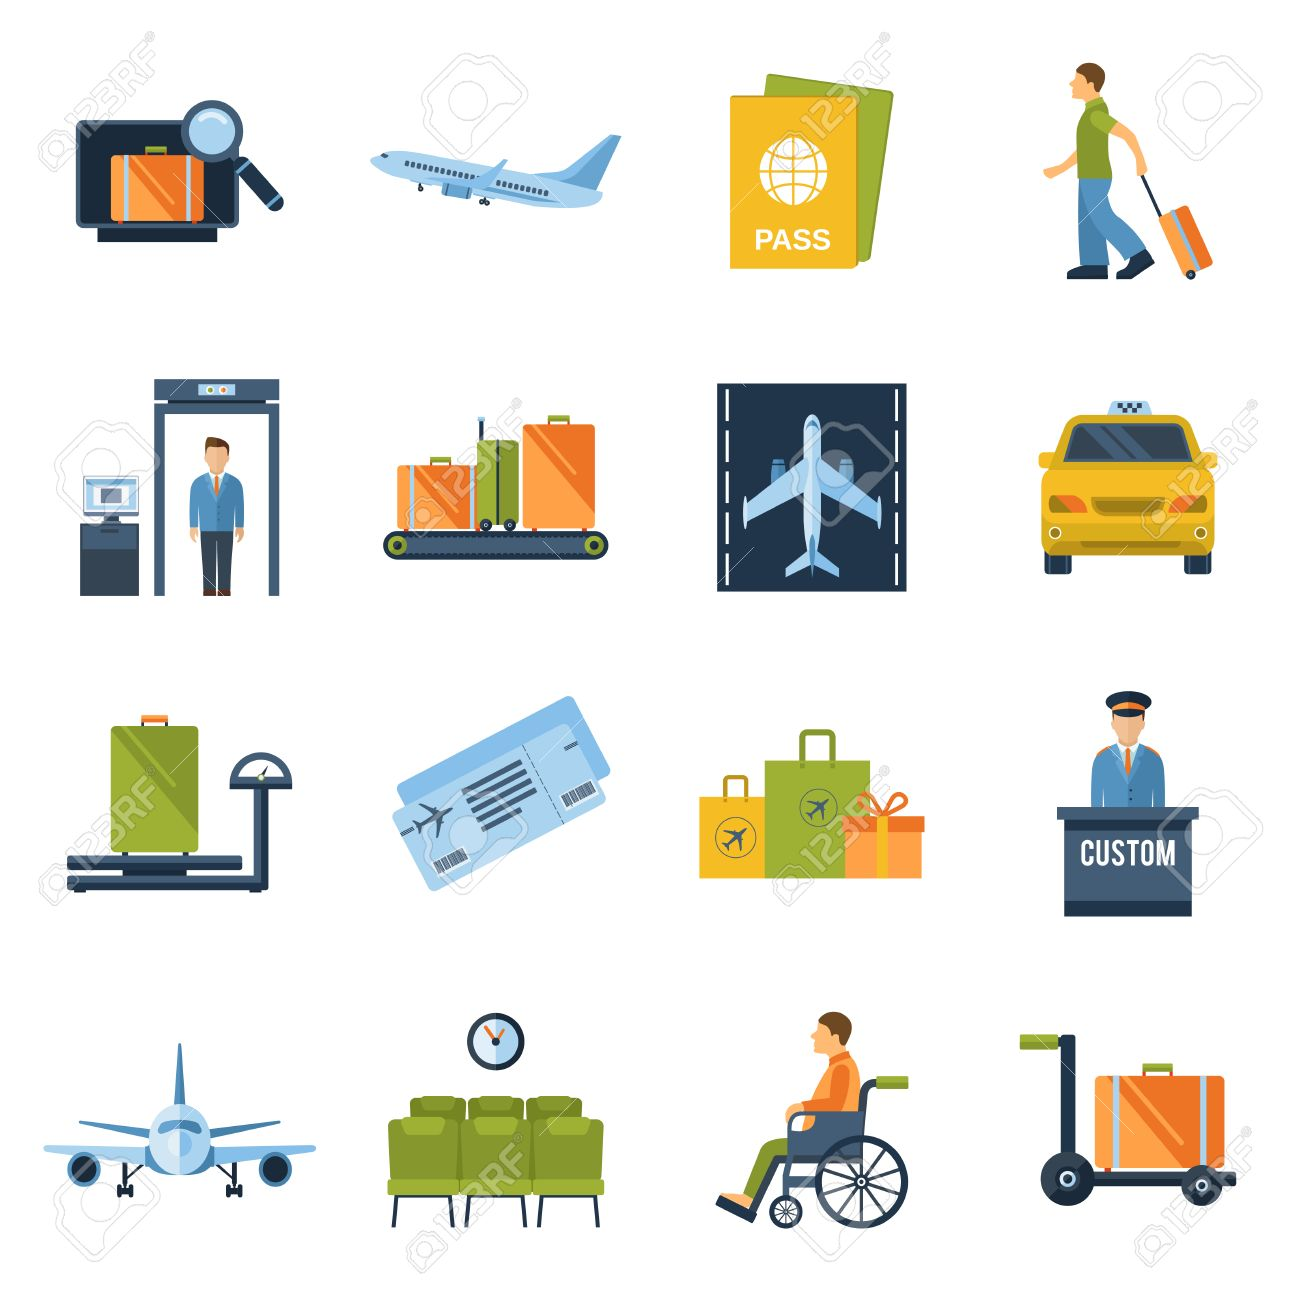 964 Airport Control Tower Cliparts, Stock Vector And Royalty Free ...